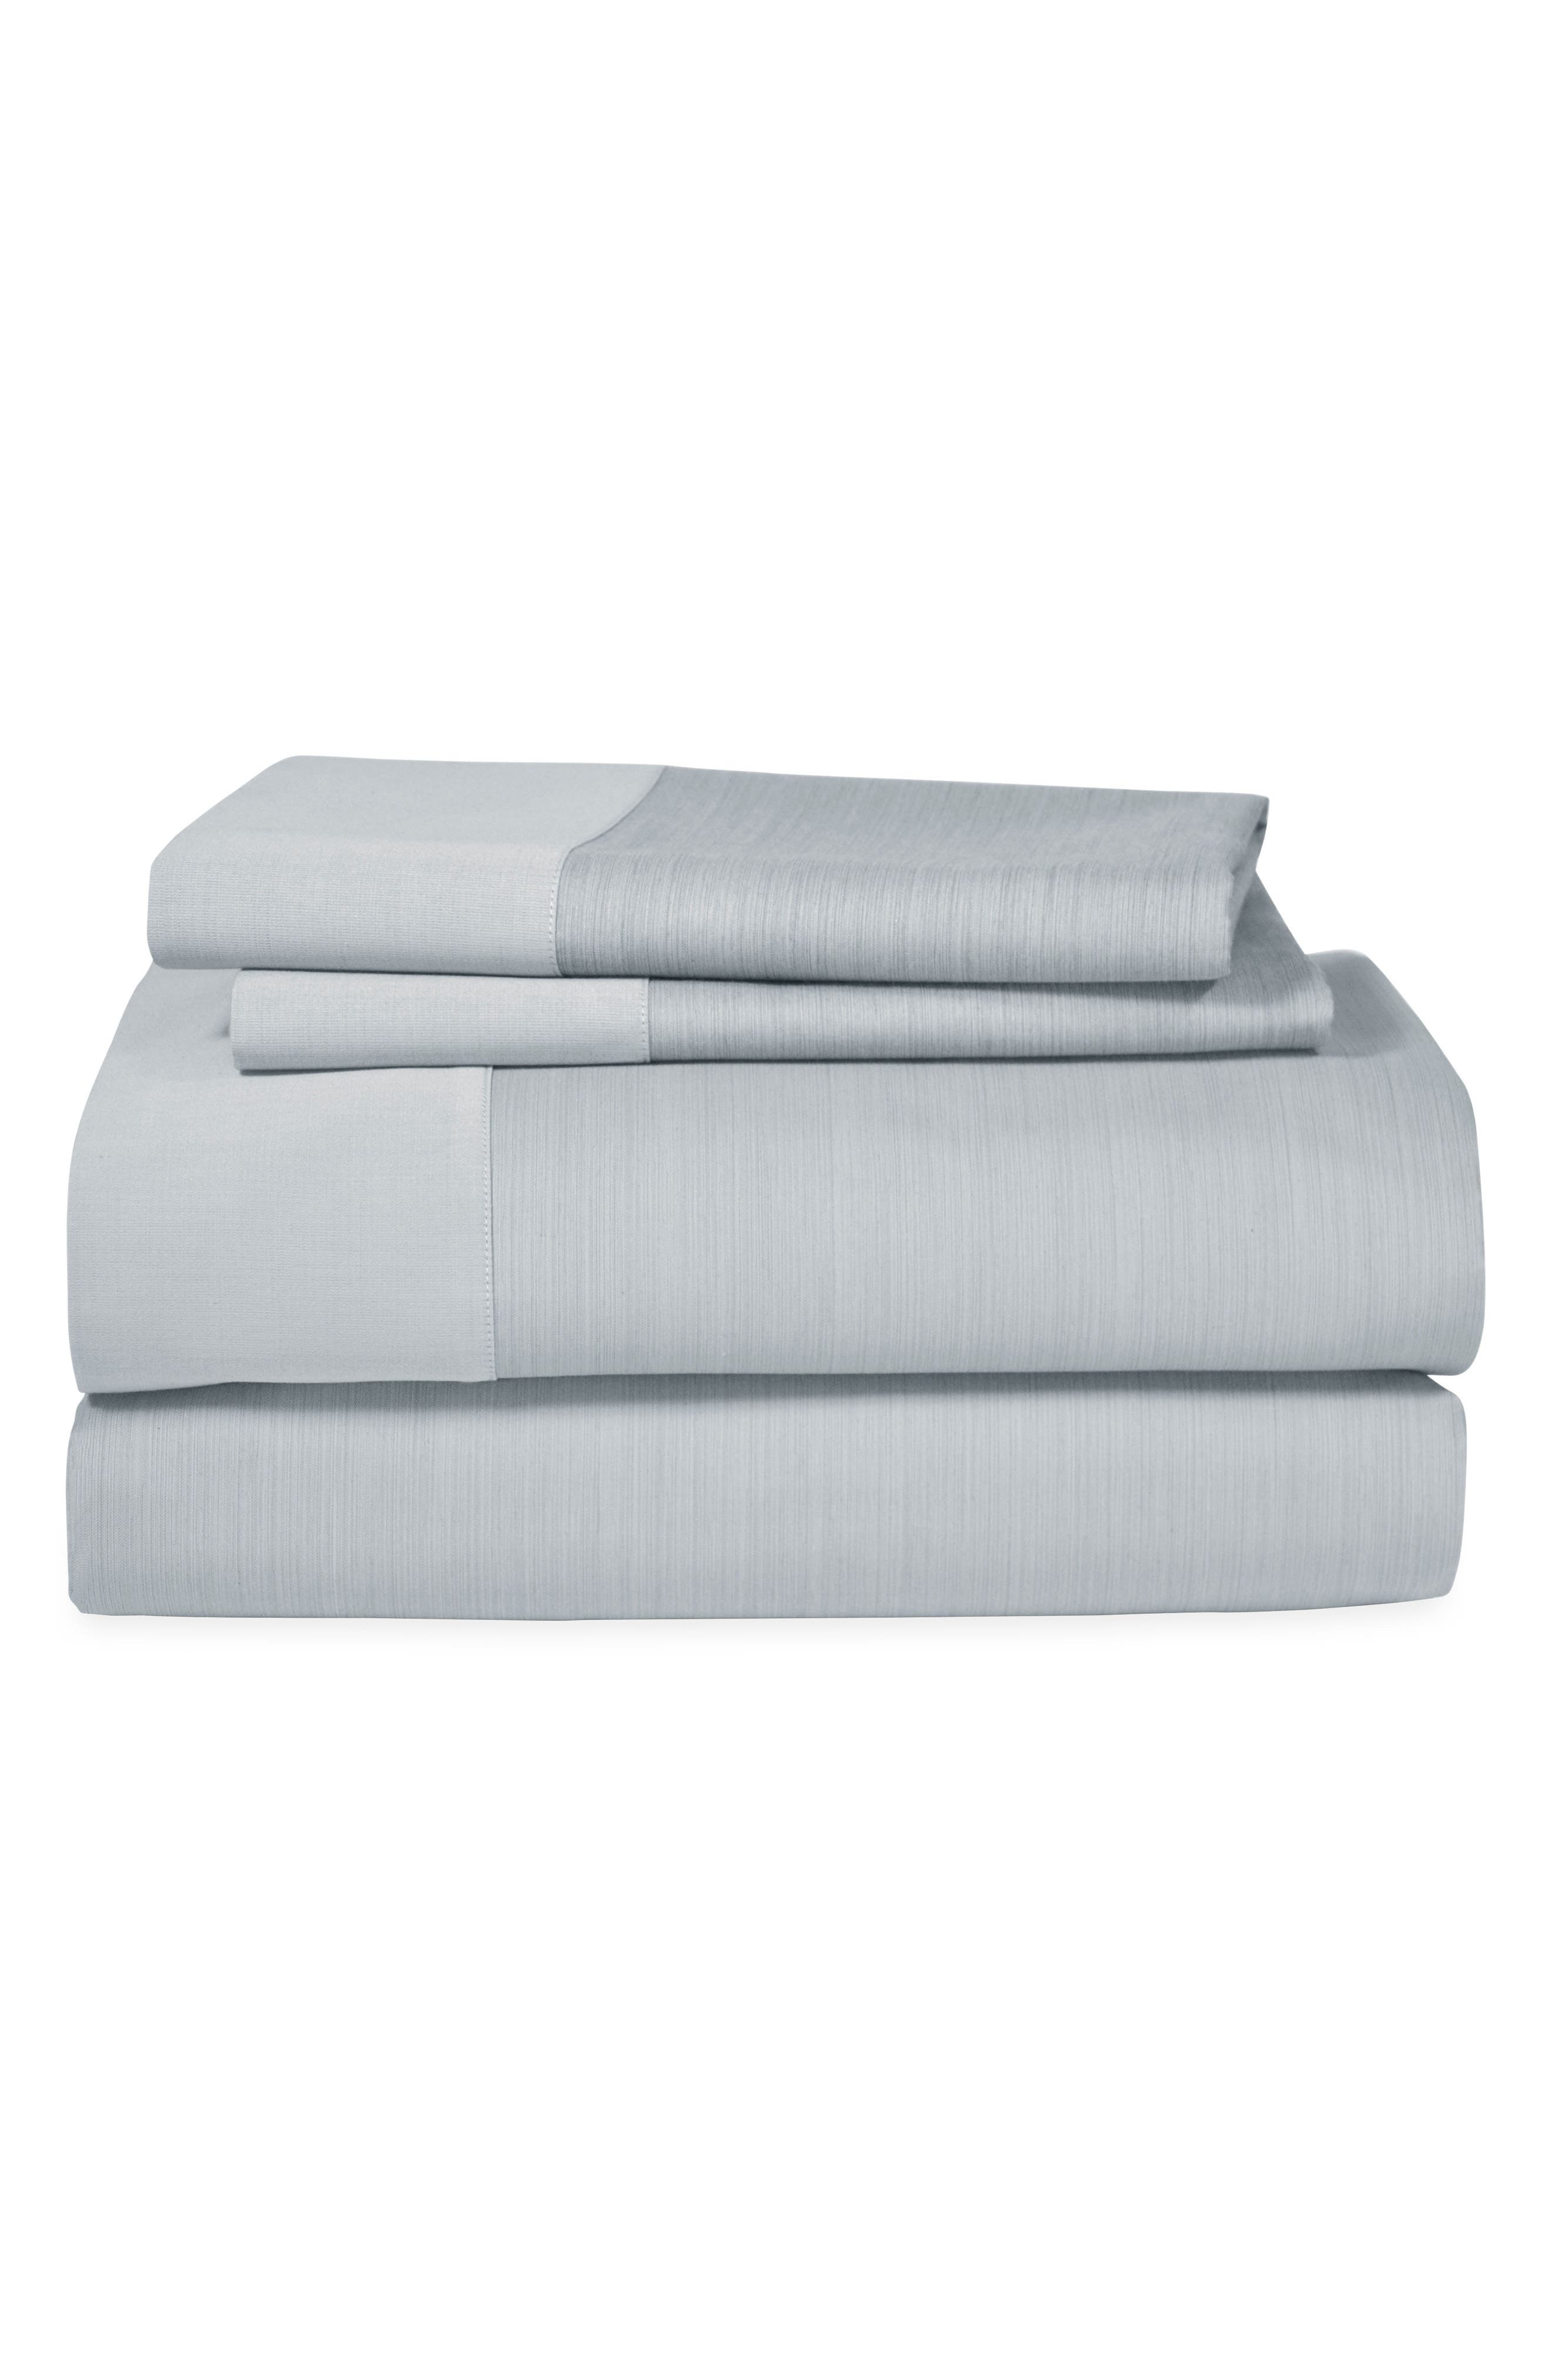 MICHAEL ARAM, Striated Band 400 Thread Count Fitted Sheet, Main thumbnail 1, color, GRAY